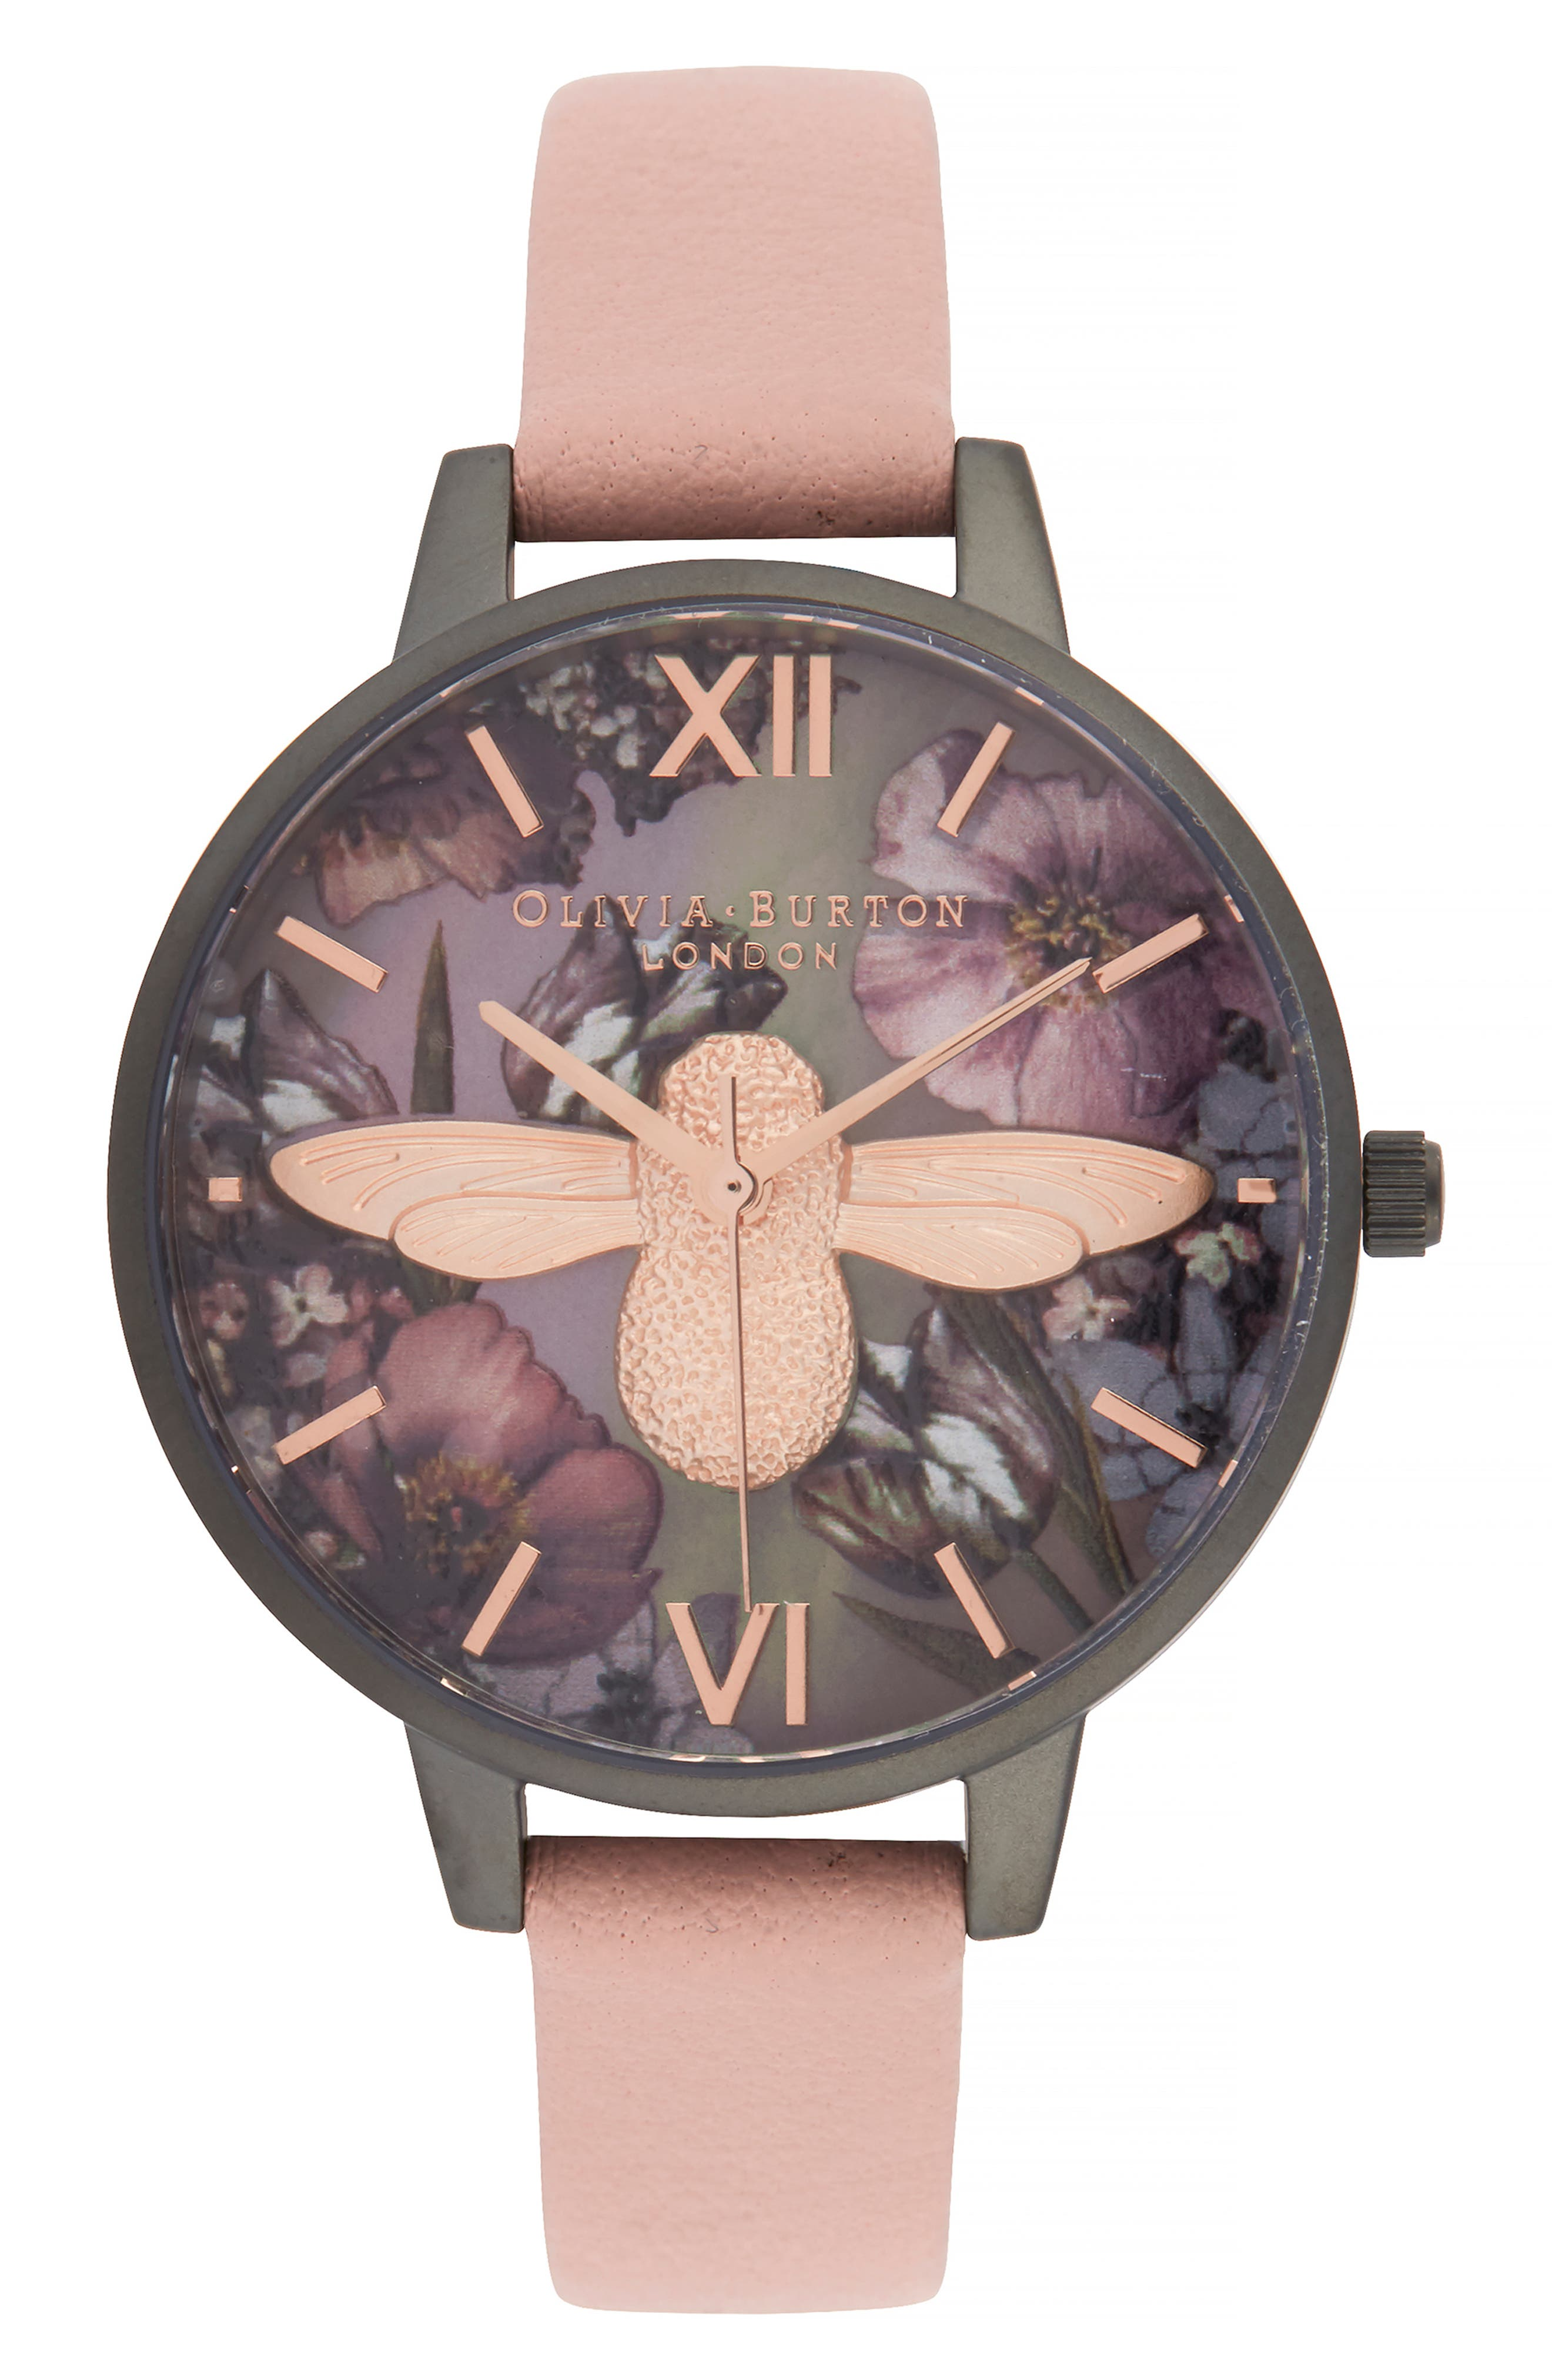 OLIVIA BURTON Twilight Lilac Mother-Of-Pearl Watch, 34 Mm in Dust Pink/Lil Floral/Gunmetal